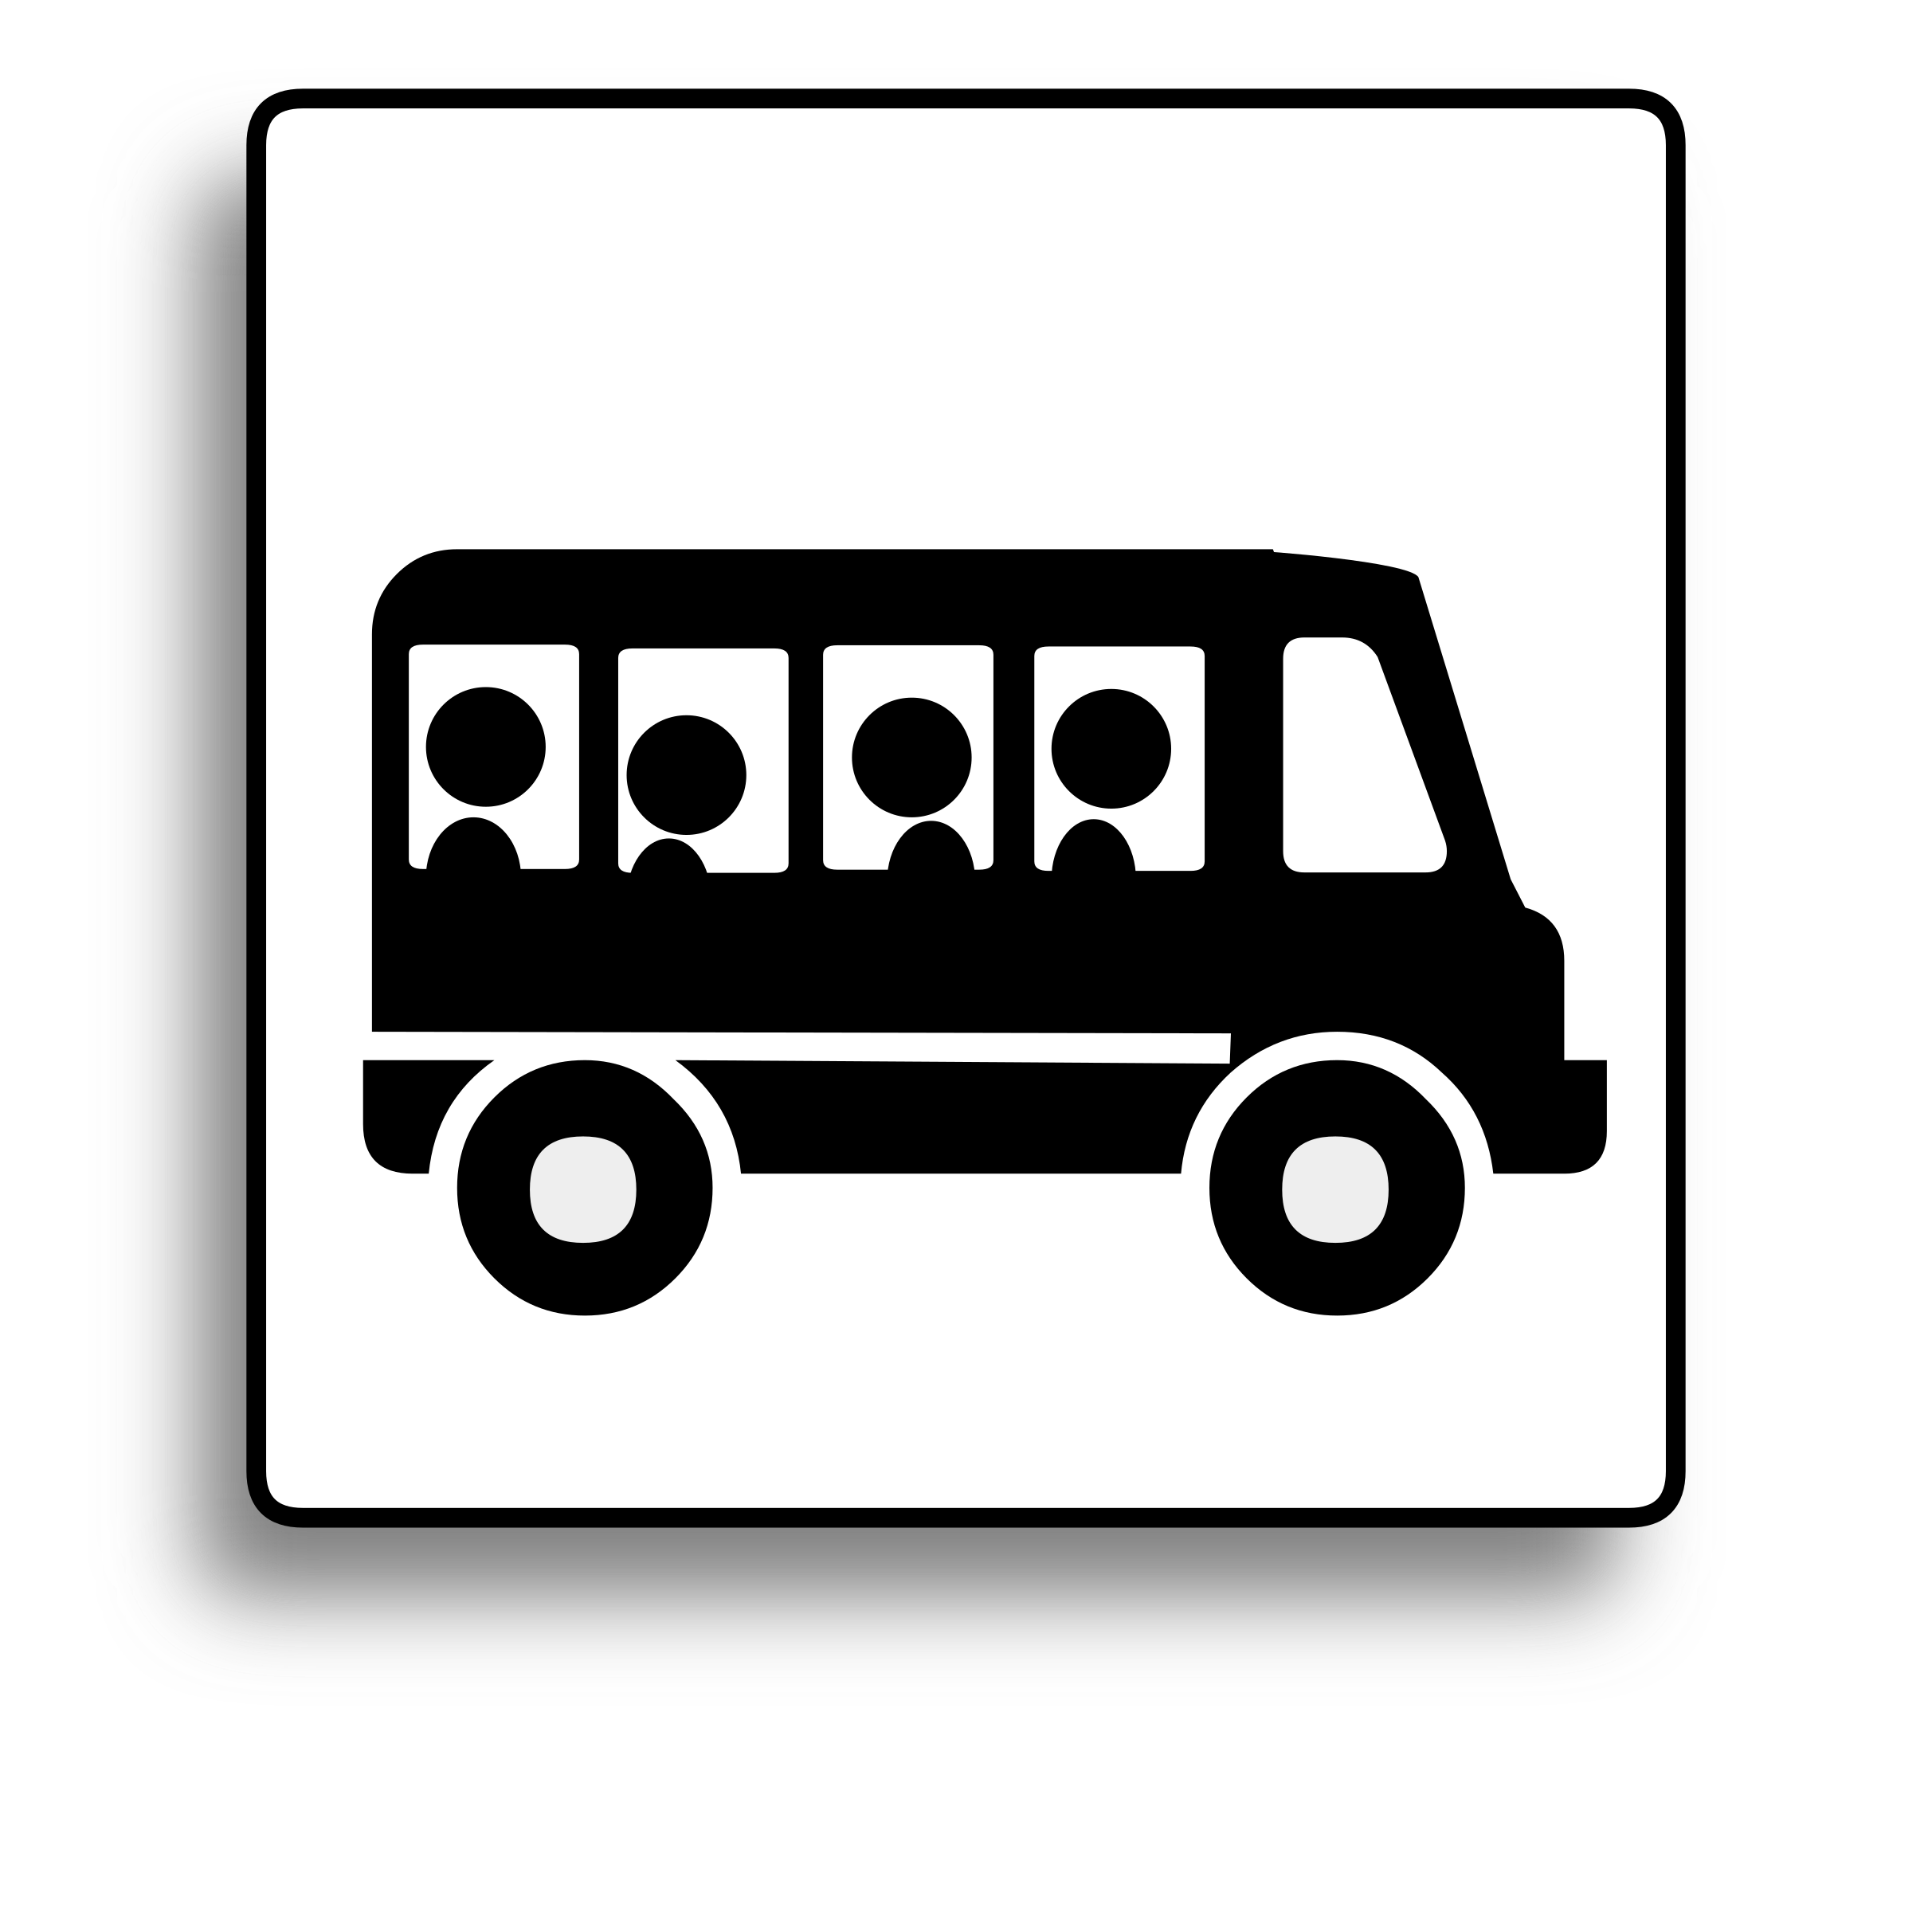 Bus Icon for use with signs or buttons by milovanderlinden